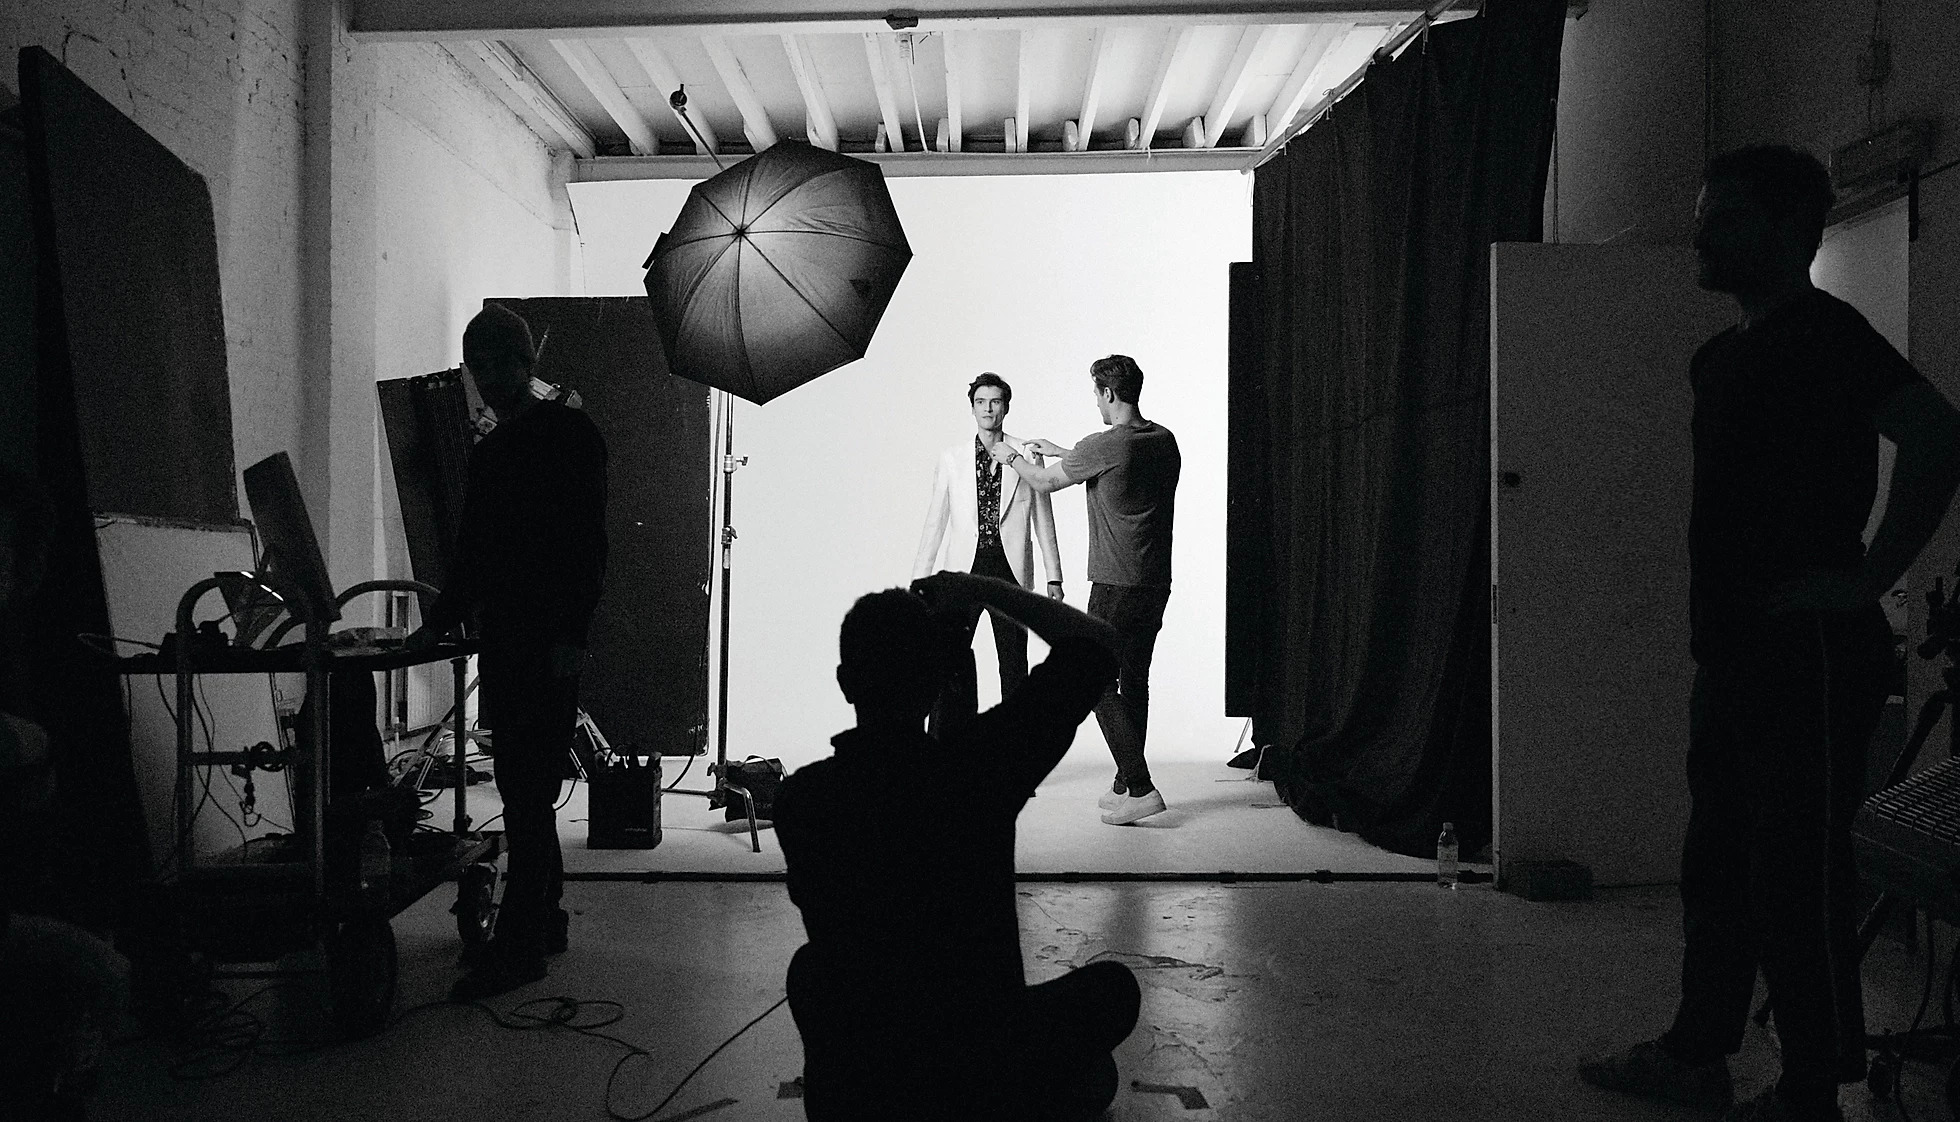 Behind the scenes of a Reiss studio photoshoot